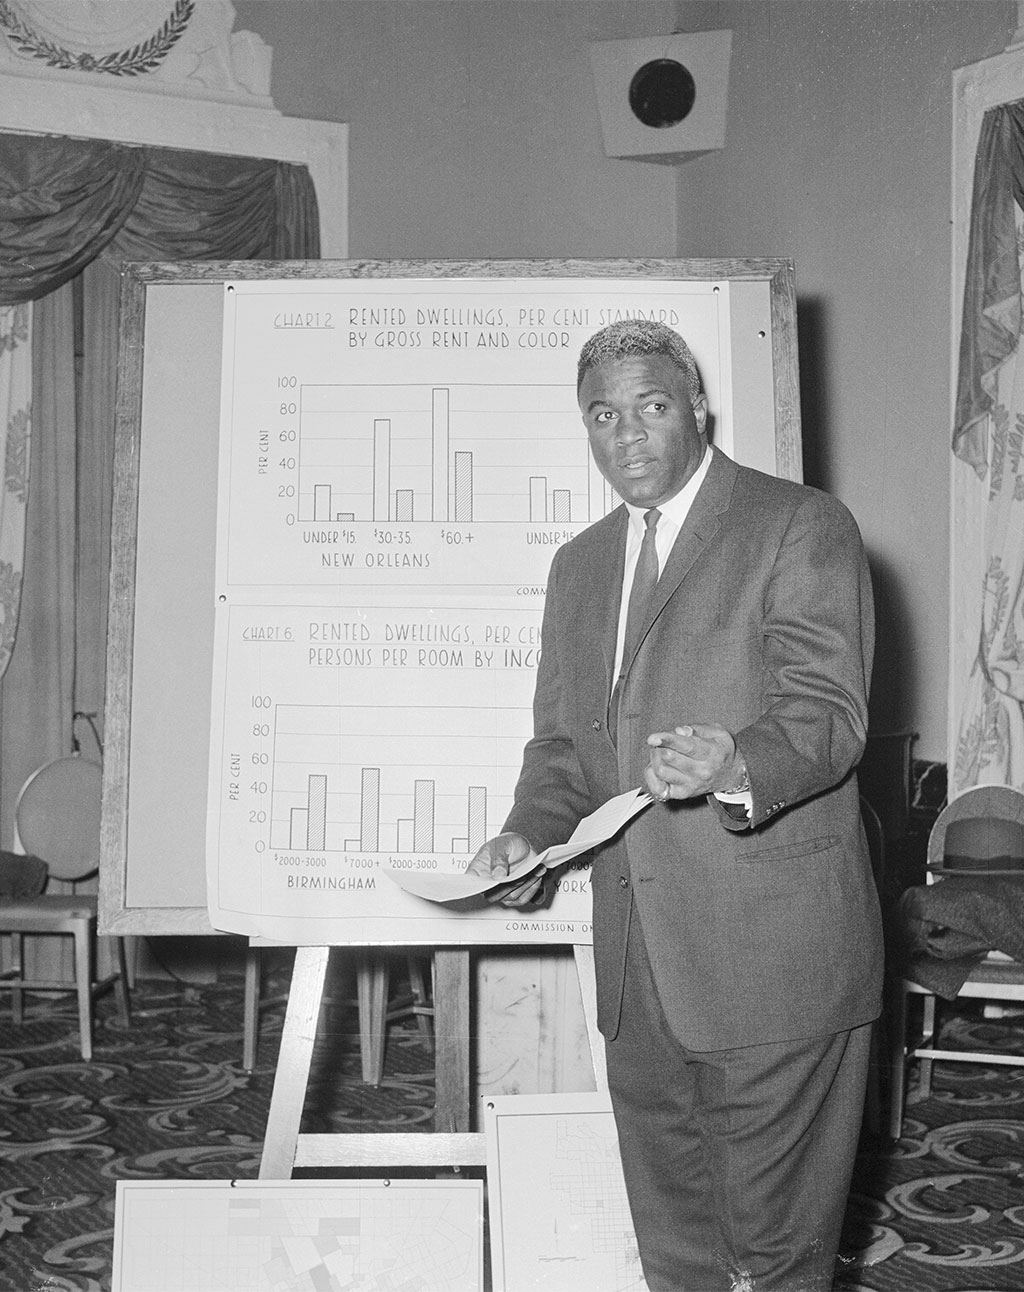 Jackie Robinson presents on housing discrimination before the Federal Civil Rights Commission, 1959<br/>Courtesy of the Bettman Archive, Getty Images